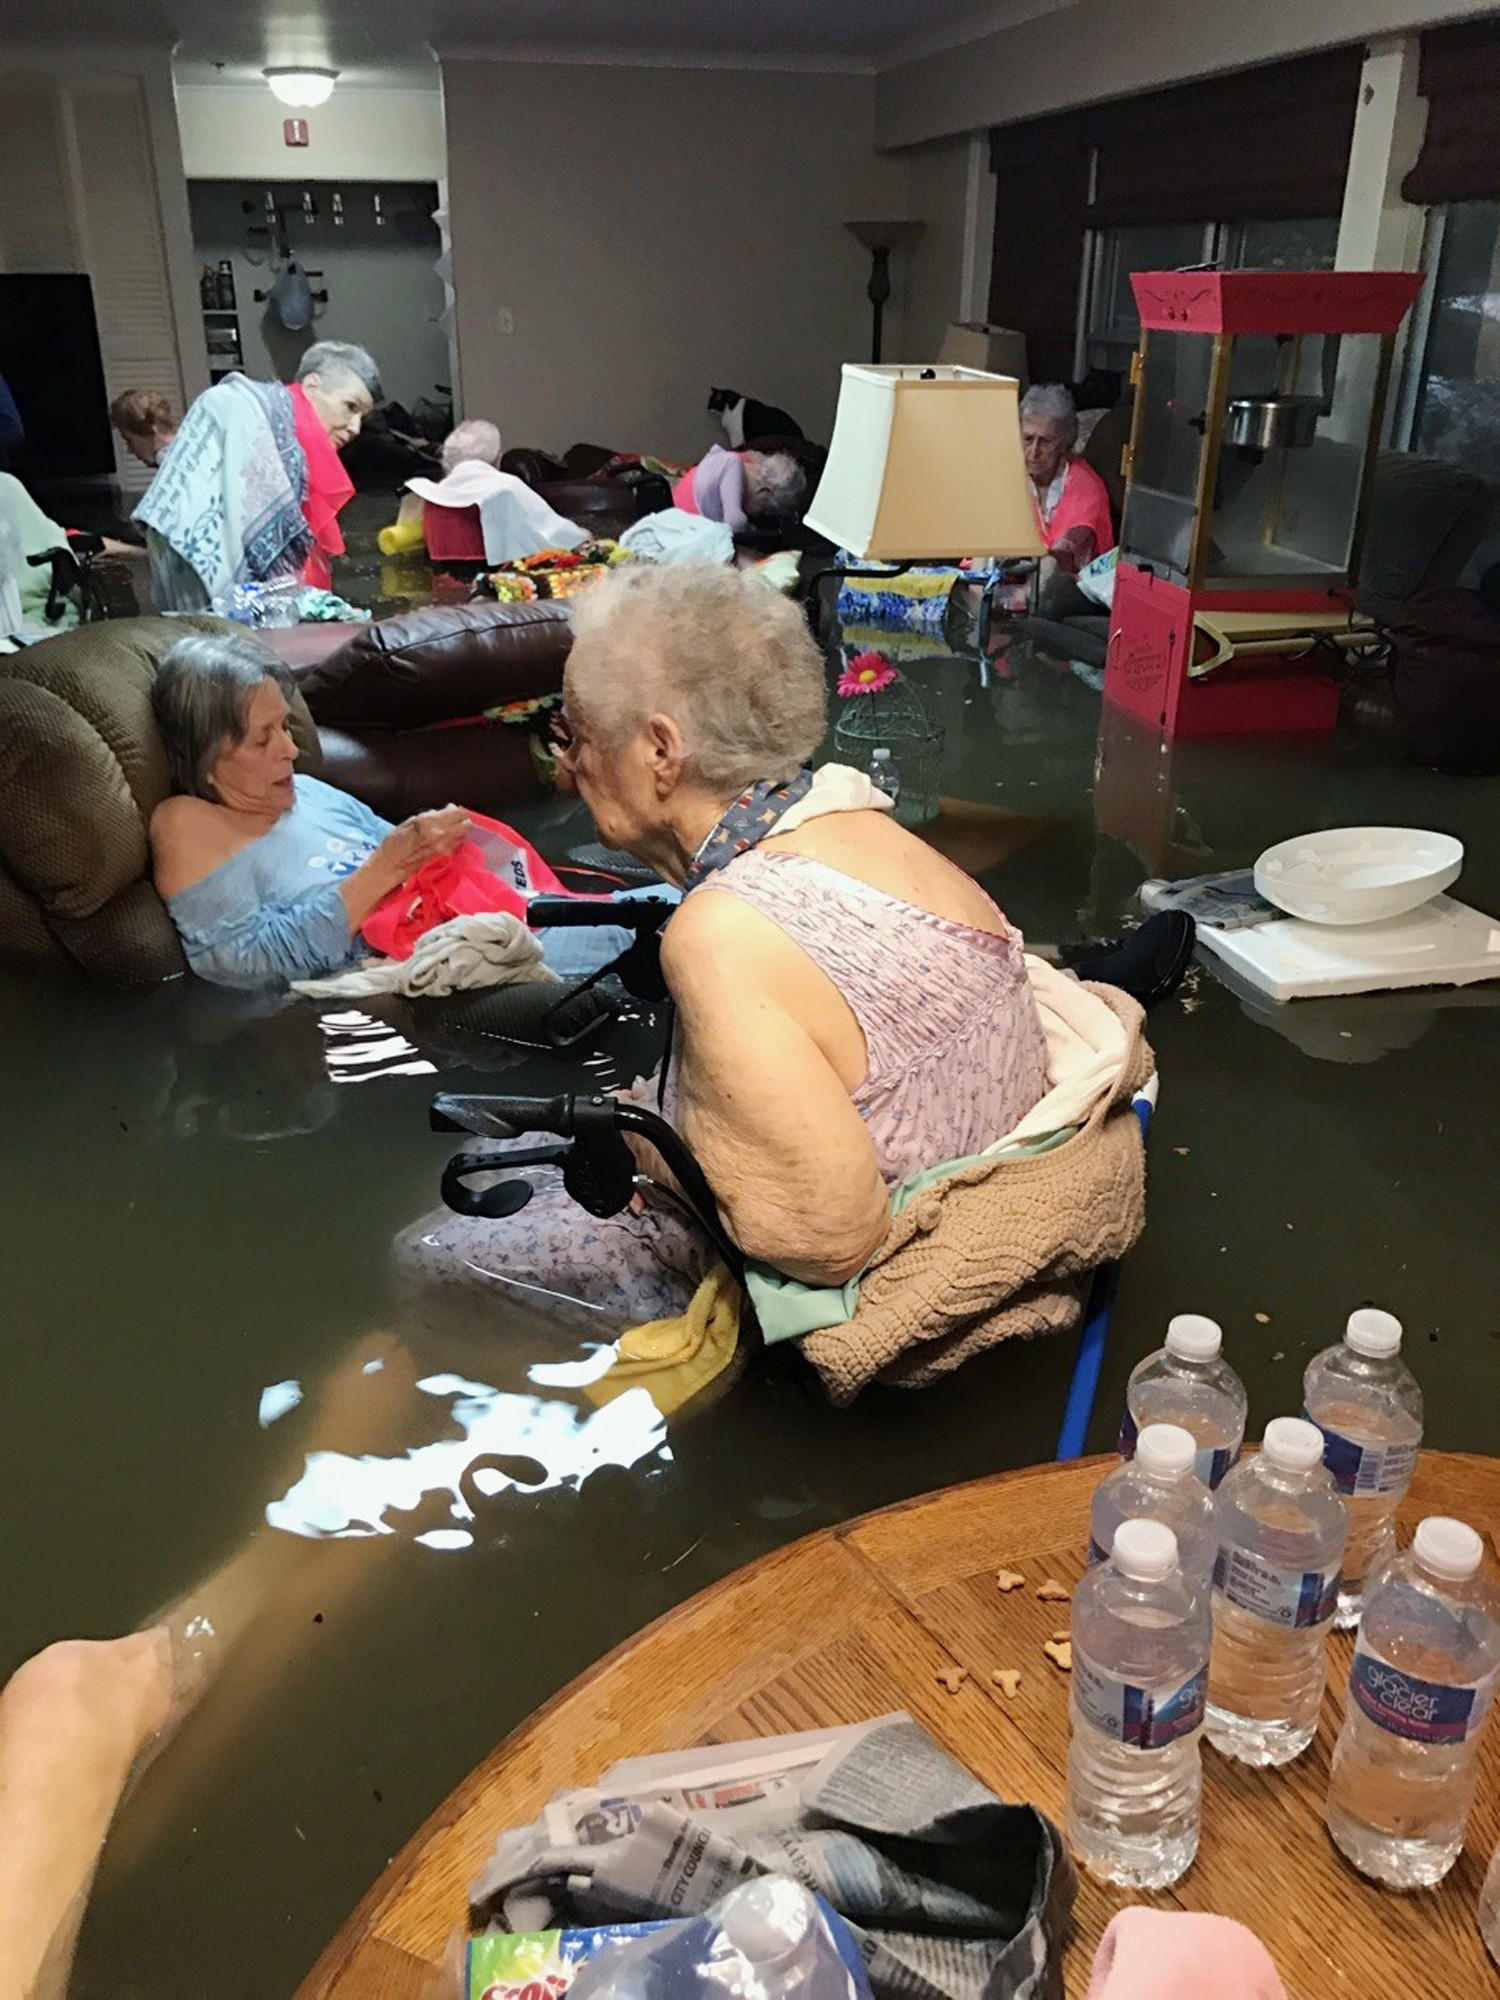 Residents of the La Vita Bella nursing home in Dickinson, Texas, sit in waist-deep floodwaters caused by Hurricane Harvey.